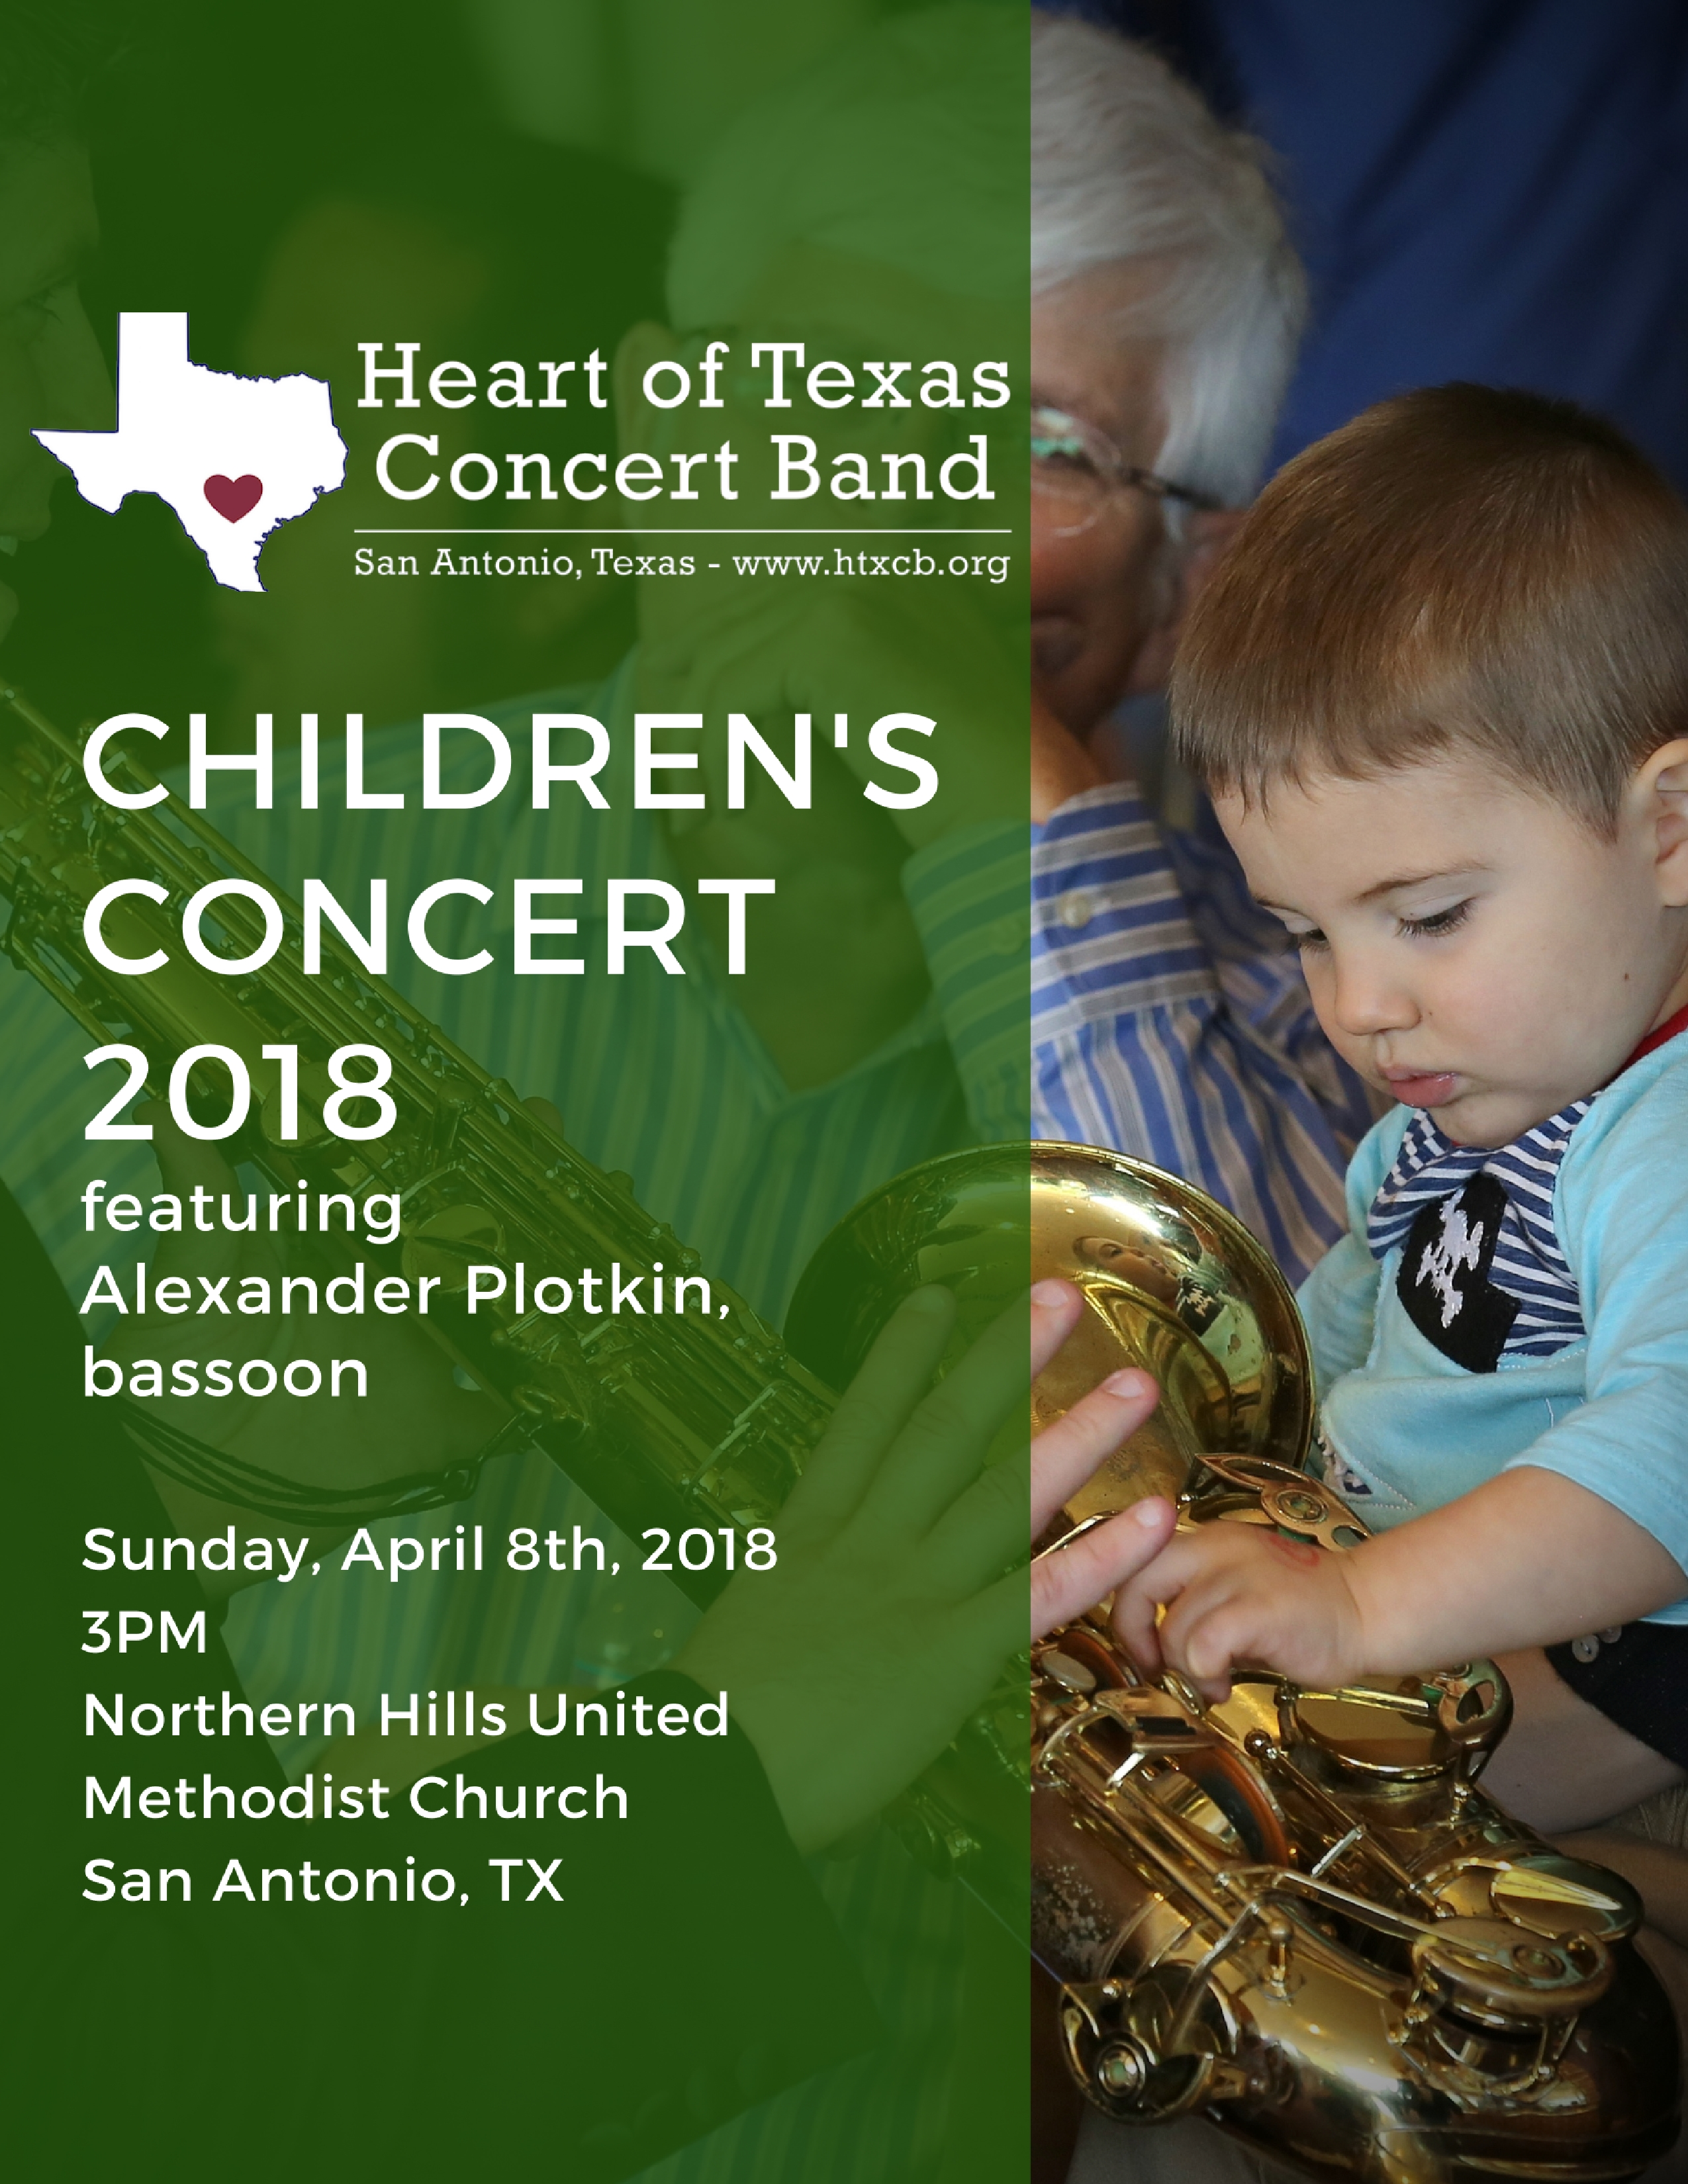 Children's Concert - April 8th at 6PM